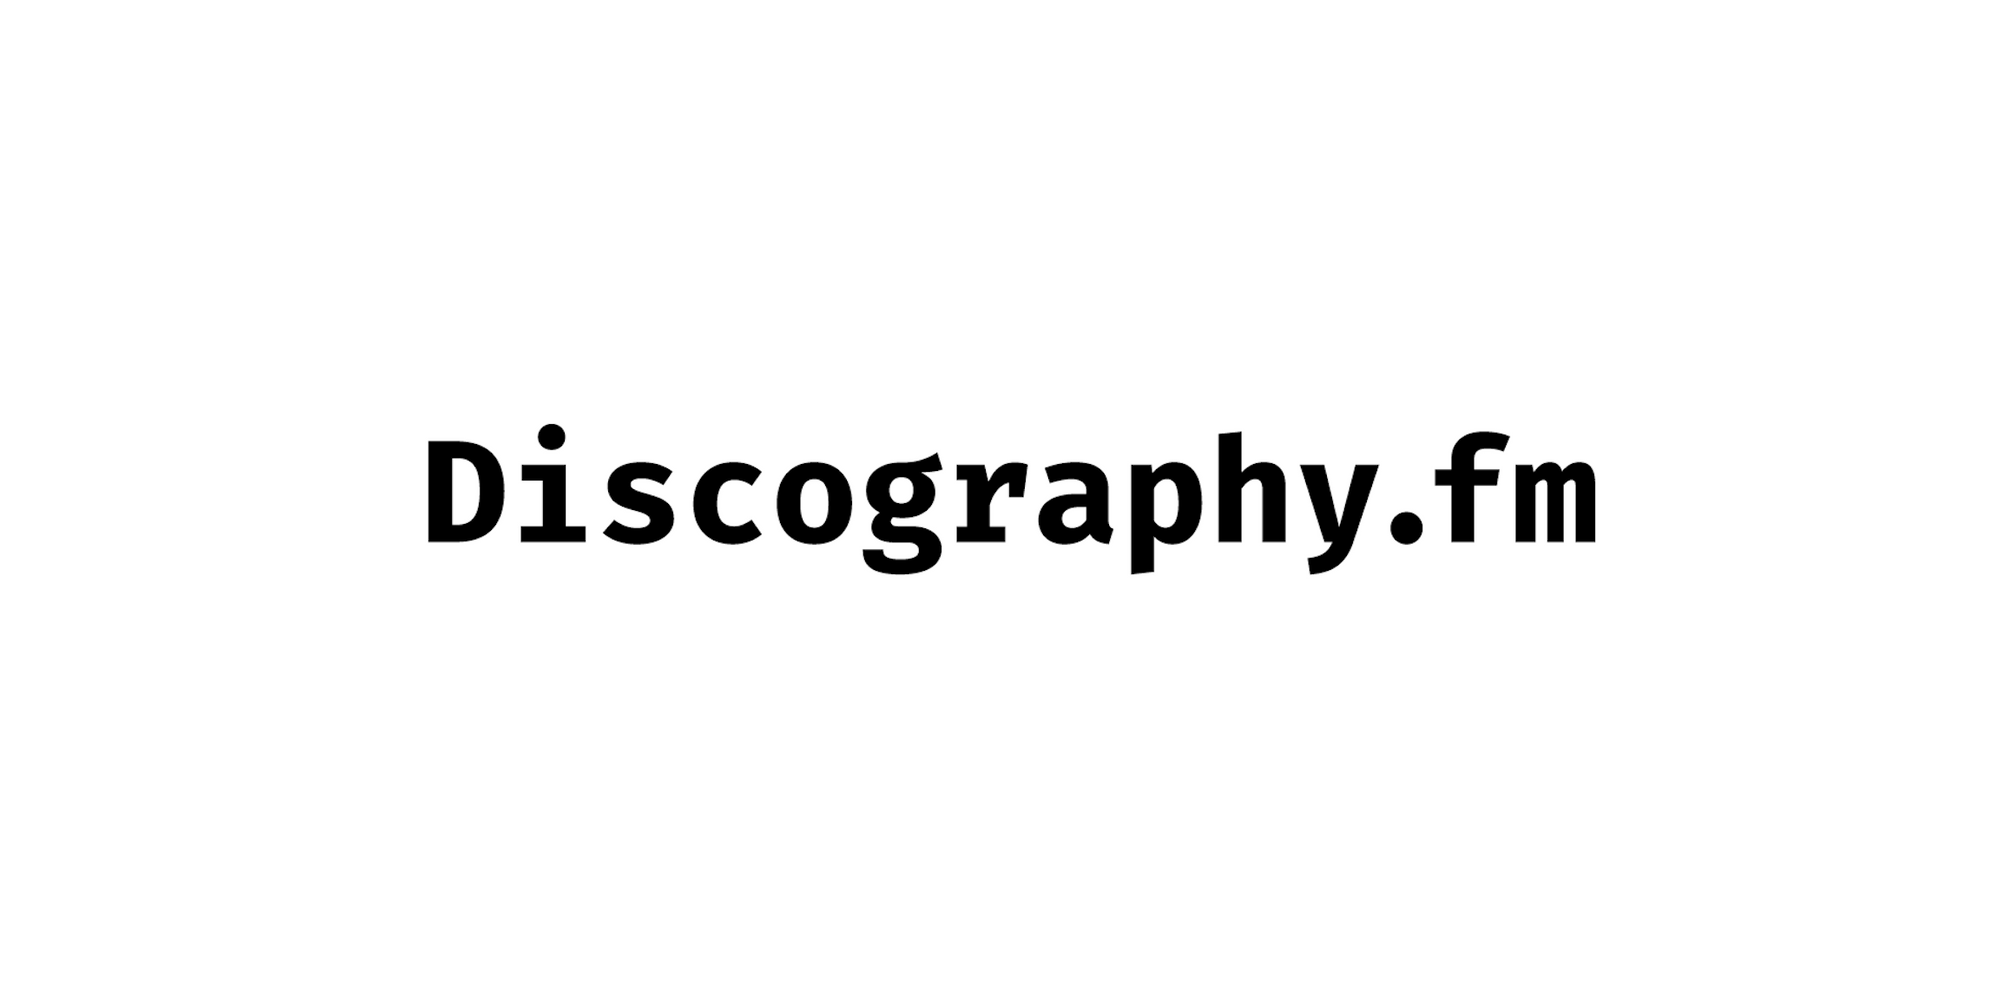 discography.fm